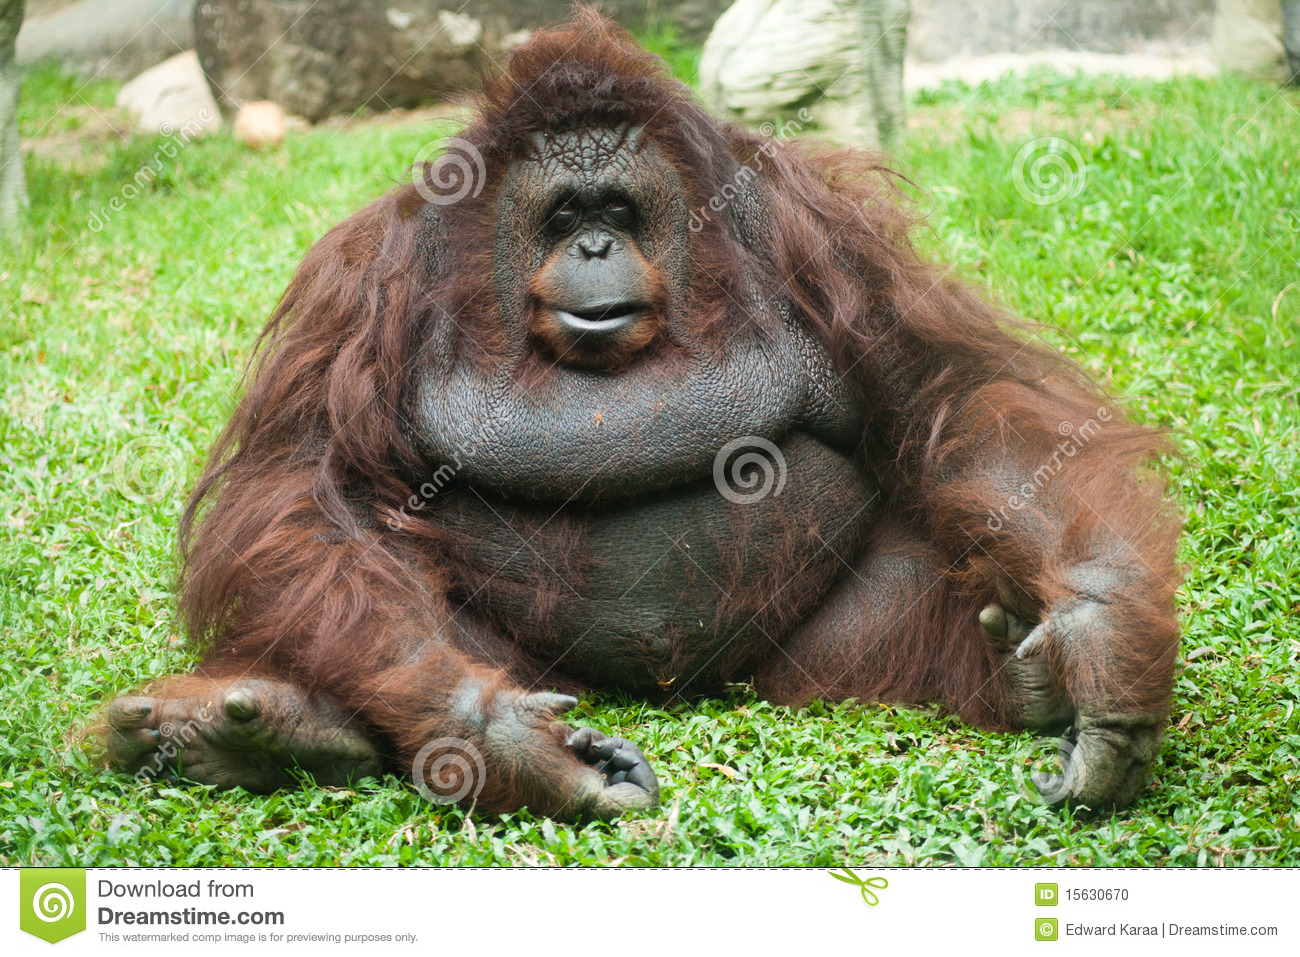 Orangutan female at Dusit Zoo, Bangkok, Thailand.